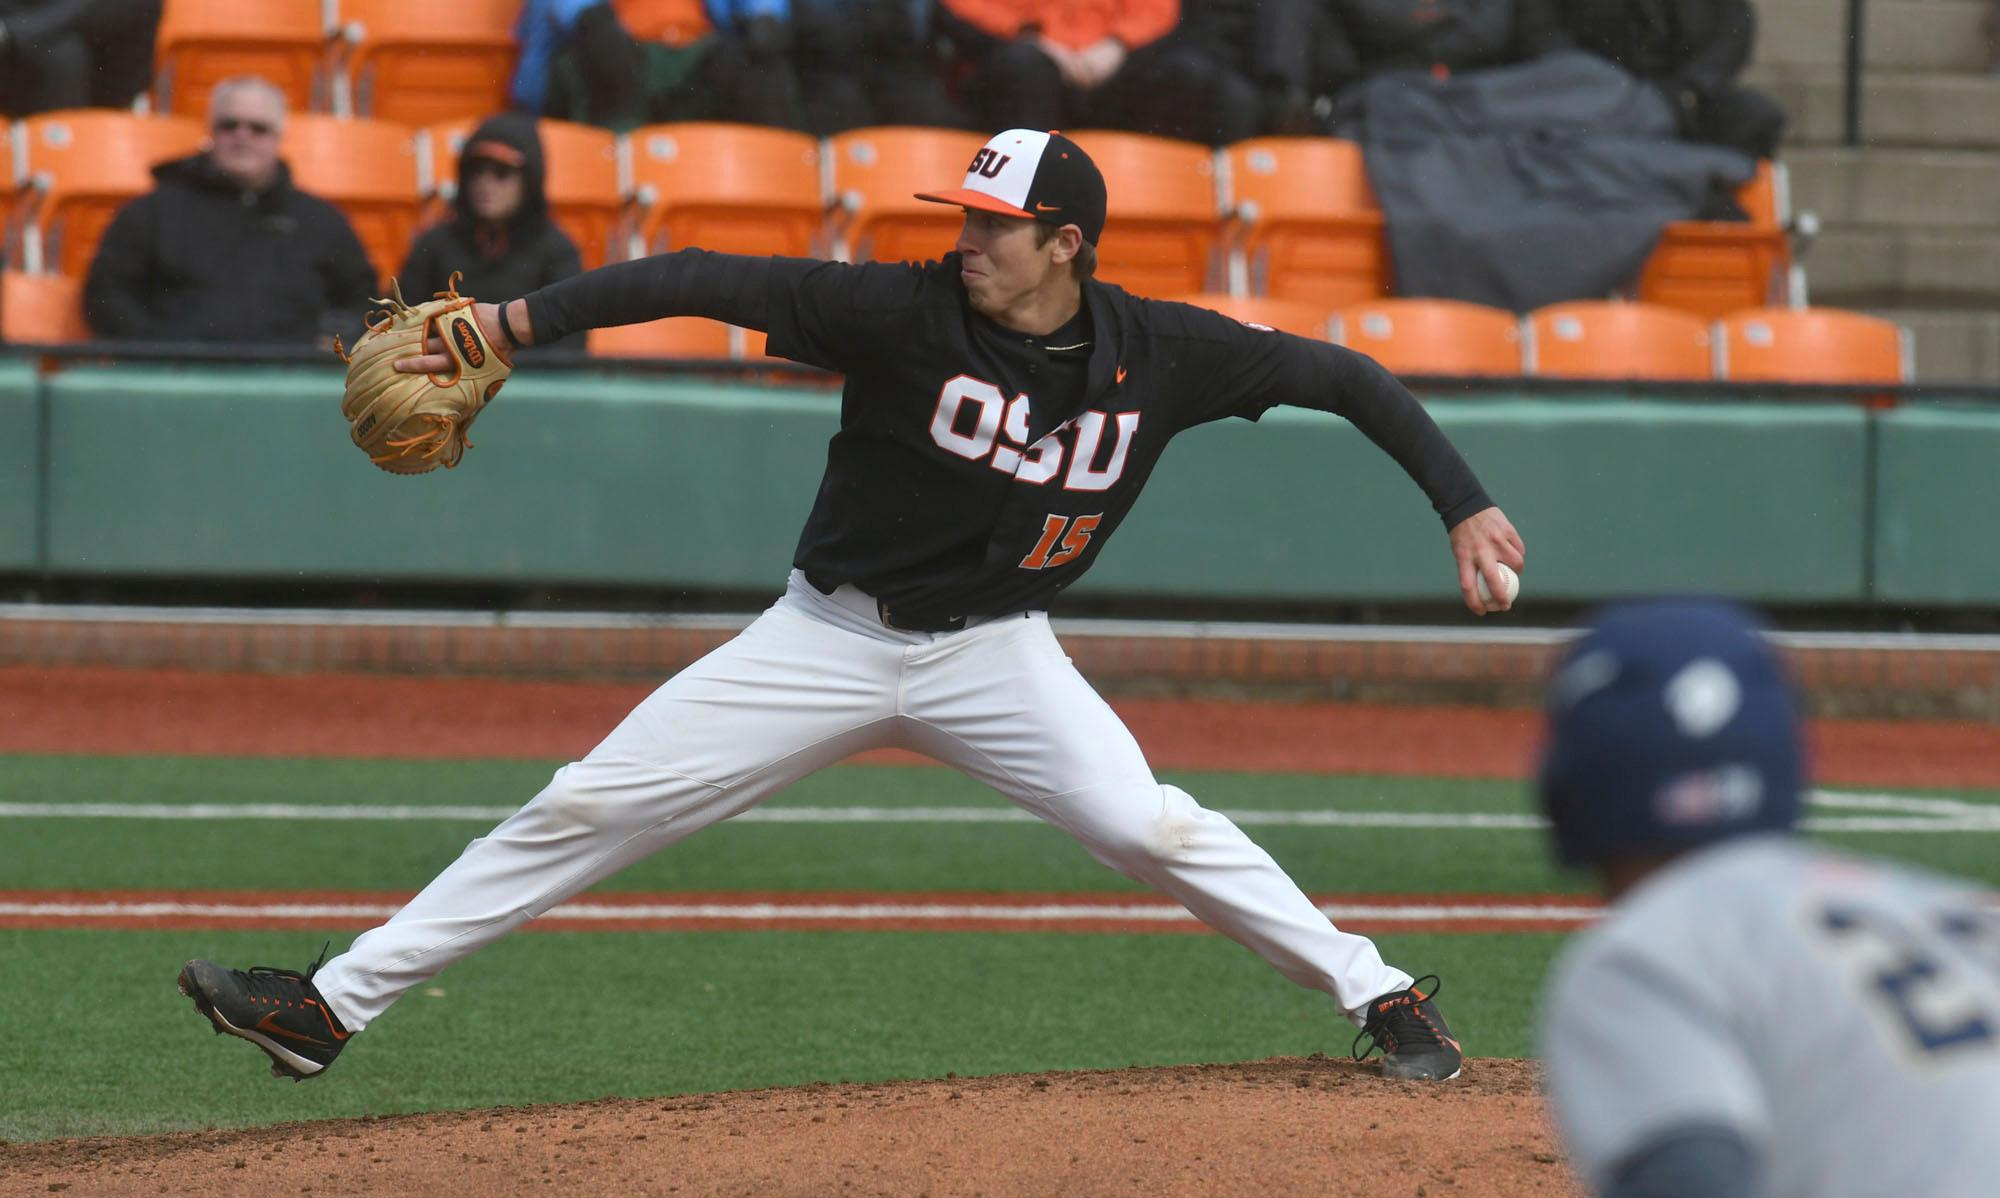 In this March 4, 2017 photo, Oregon State pitcher Luke Heimlich delivers a pitch against UC Davis during an NCAA college baseball game in Corvallis, Ore.  Heimlich, a standout pitcher for Oregon State's top-ranked baseball team, pleaded guilty to a single count of molesting a 6-year-old girl when he was a teenager.  Heimlich's criminal history was reported by The Oregonian/OregonLive on Thursday, June 8, 2017. The newspaper says it learned about the 2012 conviction while doing a routine background check on Heimlich before running a profile on him.  (Mark Ylen/Albany Democrat-Herald via AP)